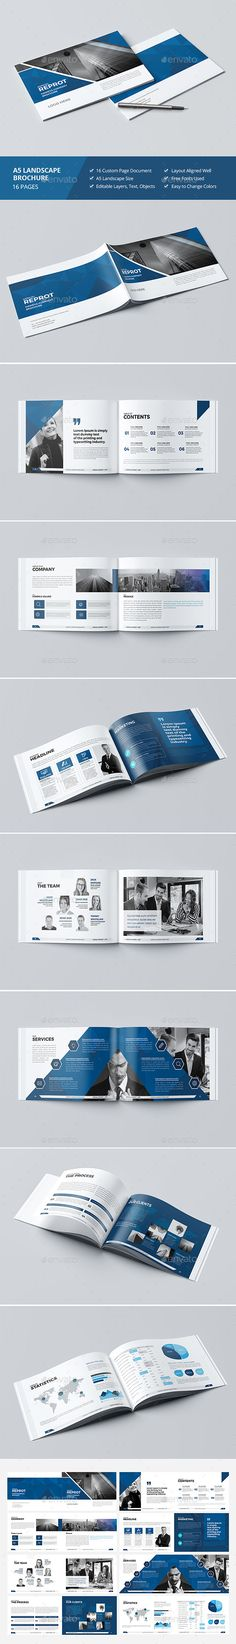 The Creative Brochure  Landscape Vol  Brochures Indesign